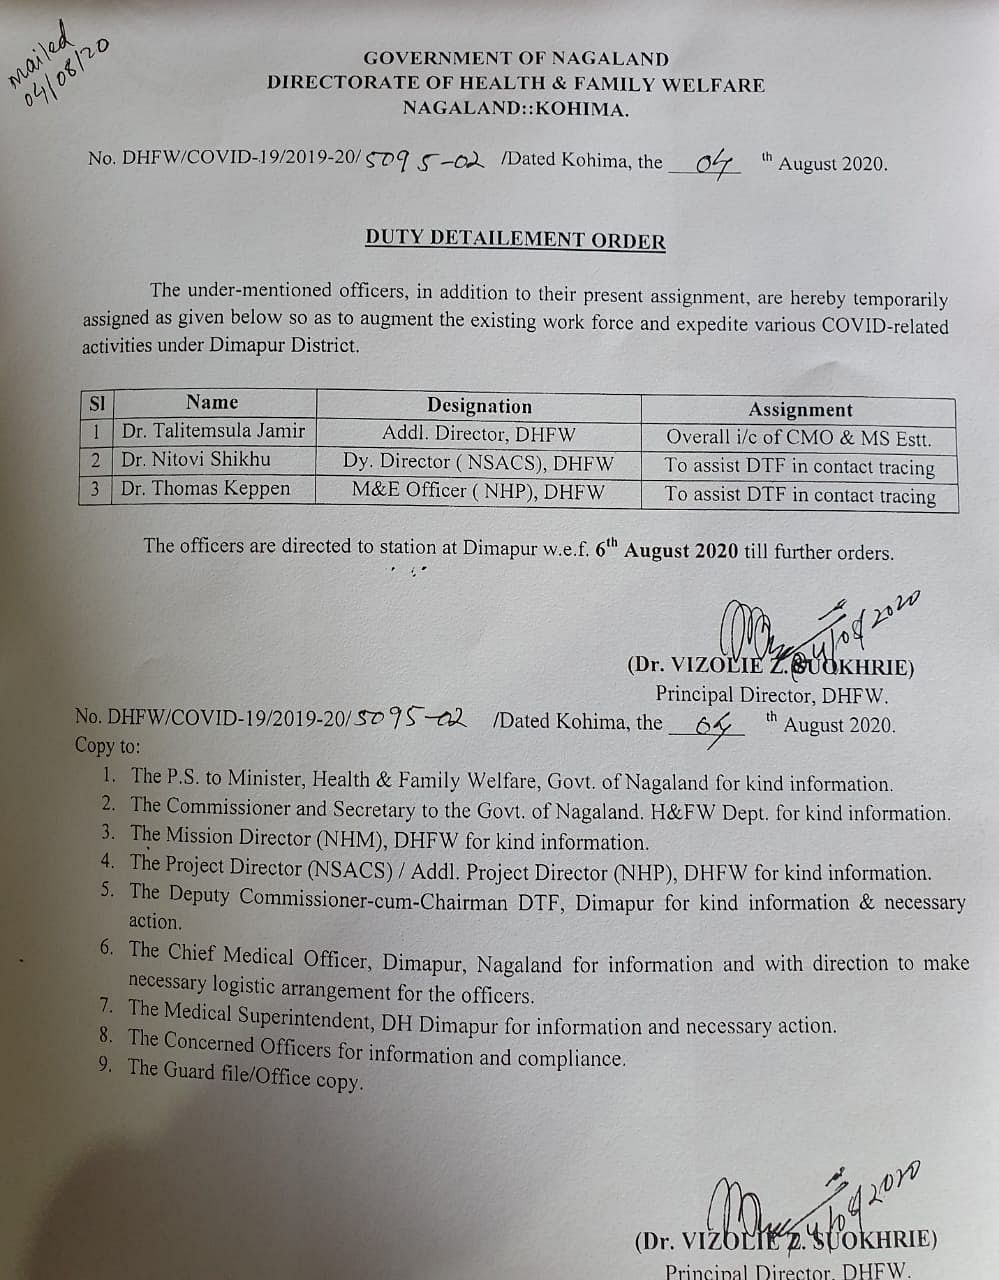 The duty detailment order that was issued by the Nagaland department of heath and family welfare on August 4